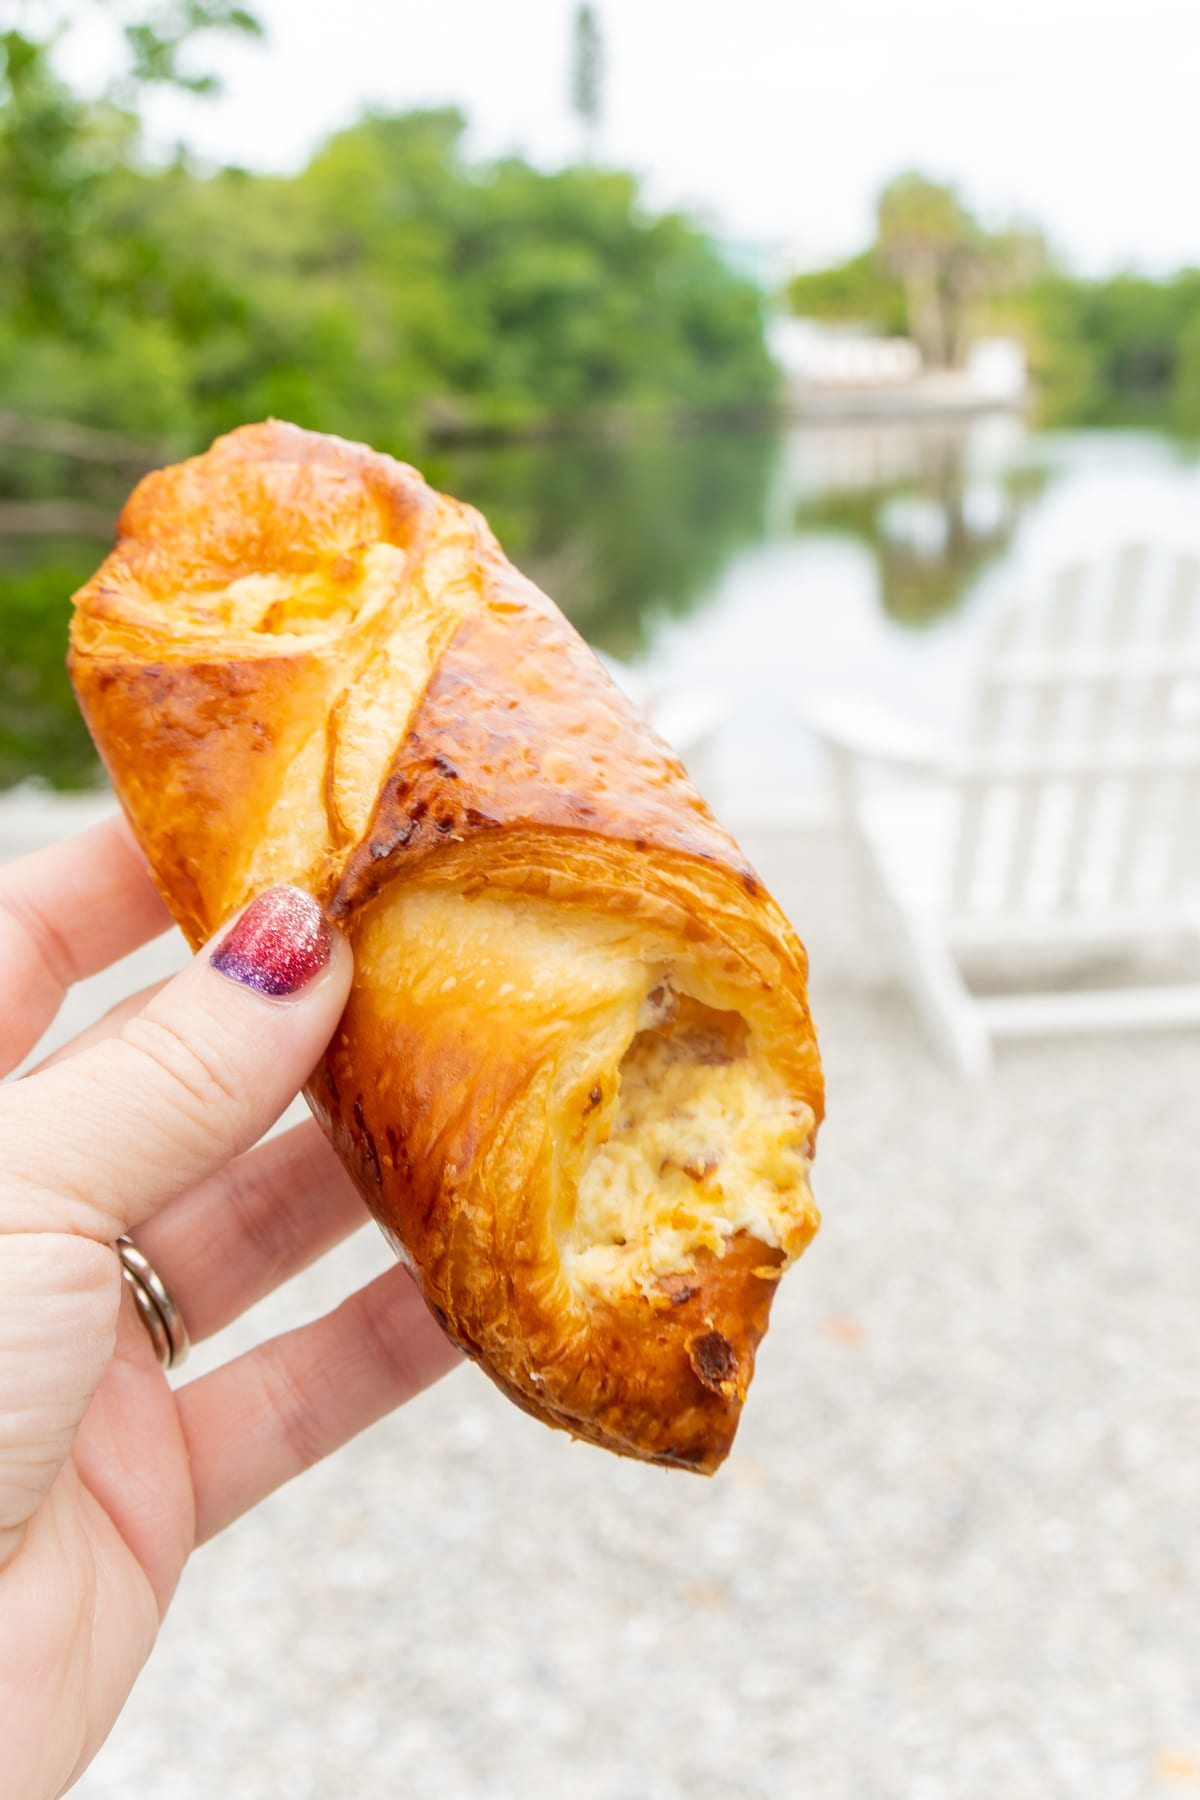 Hand holding a ham and cheese croissant